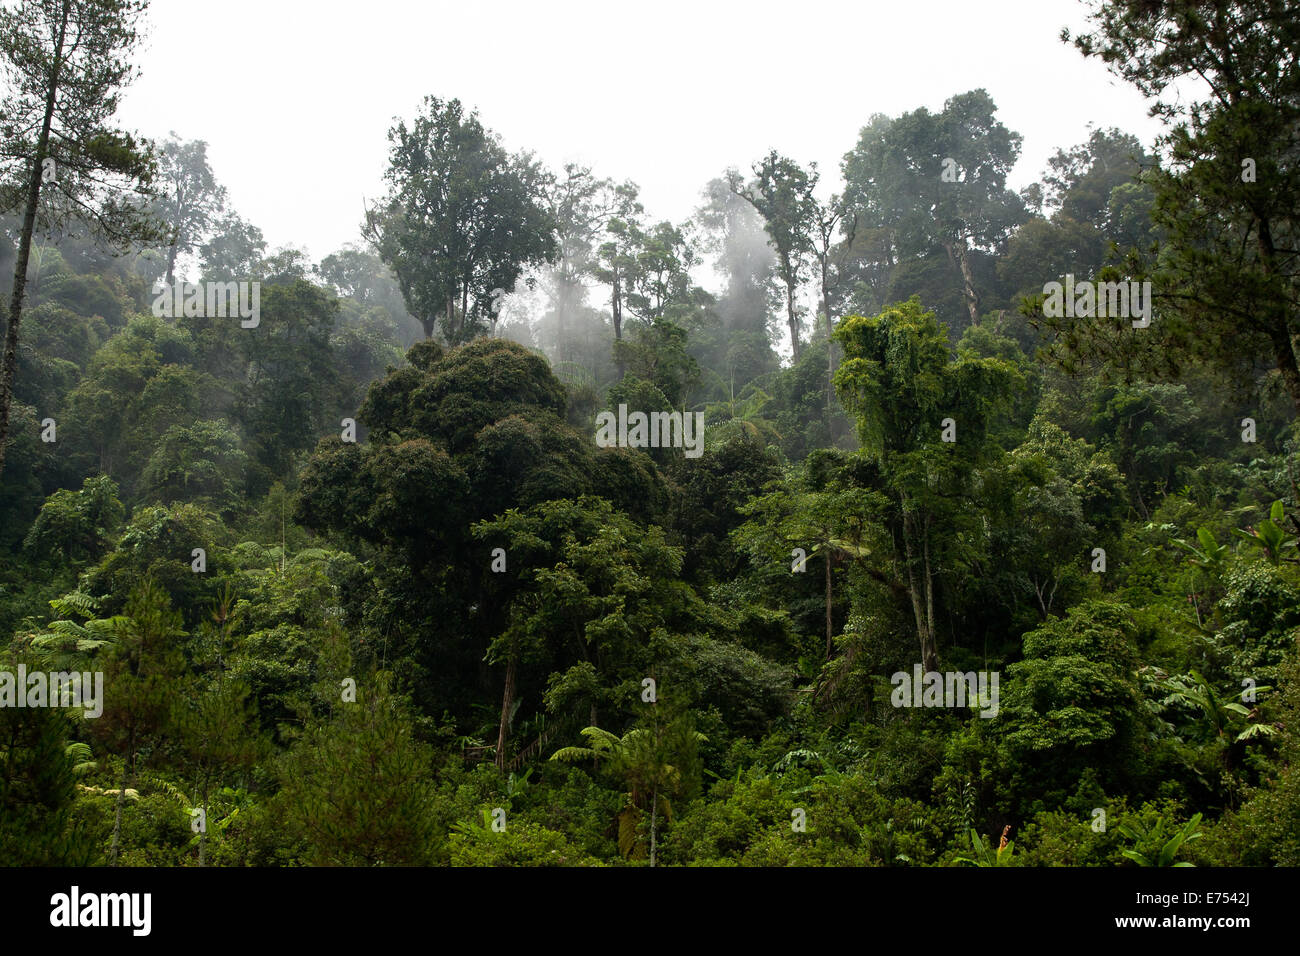 Dans la jungle de l'île de Java en Indonésie. Photo Stock